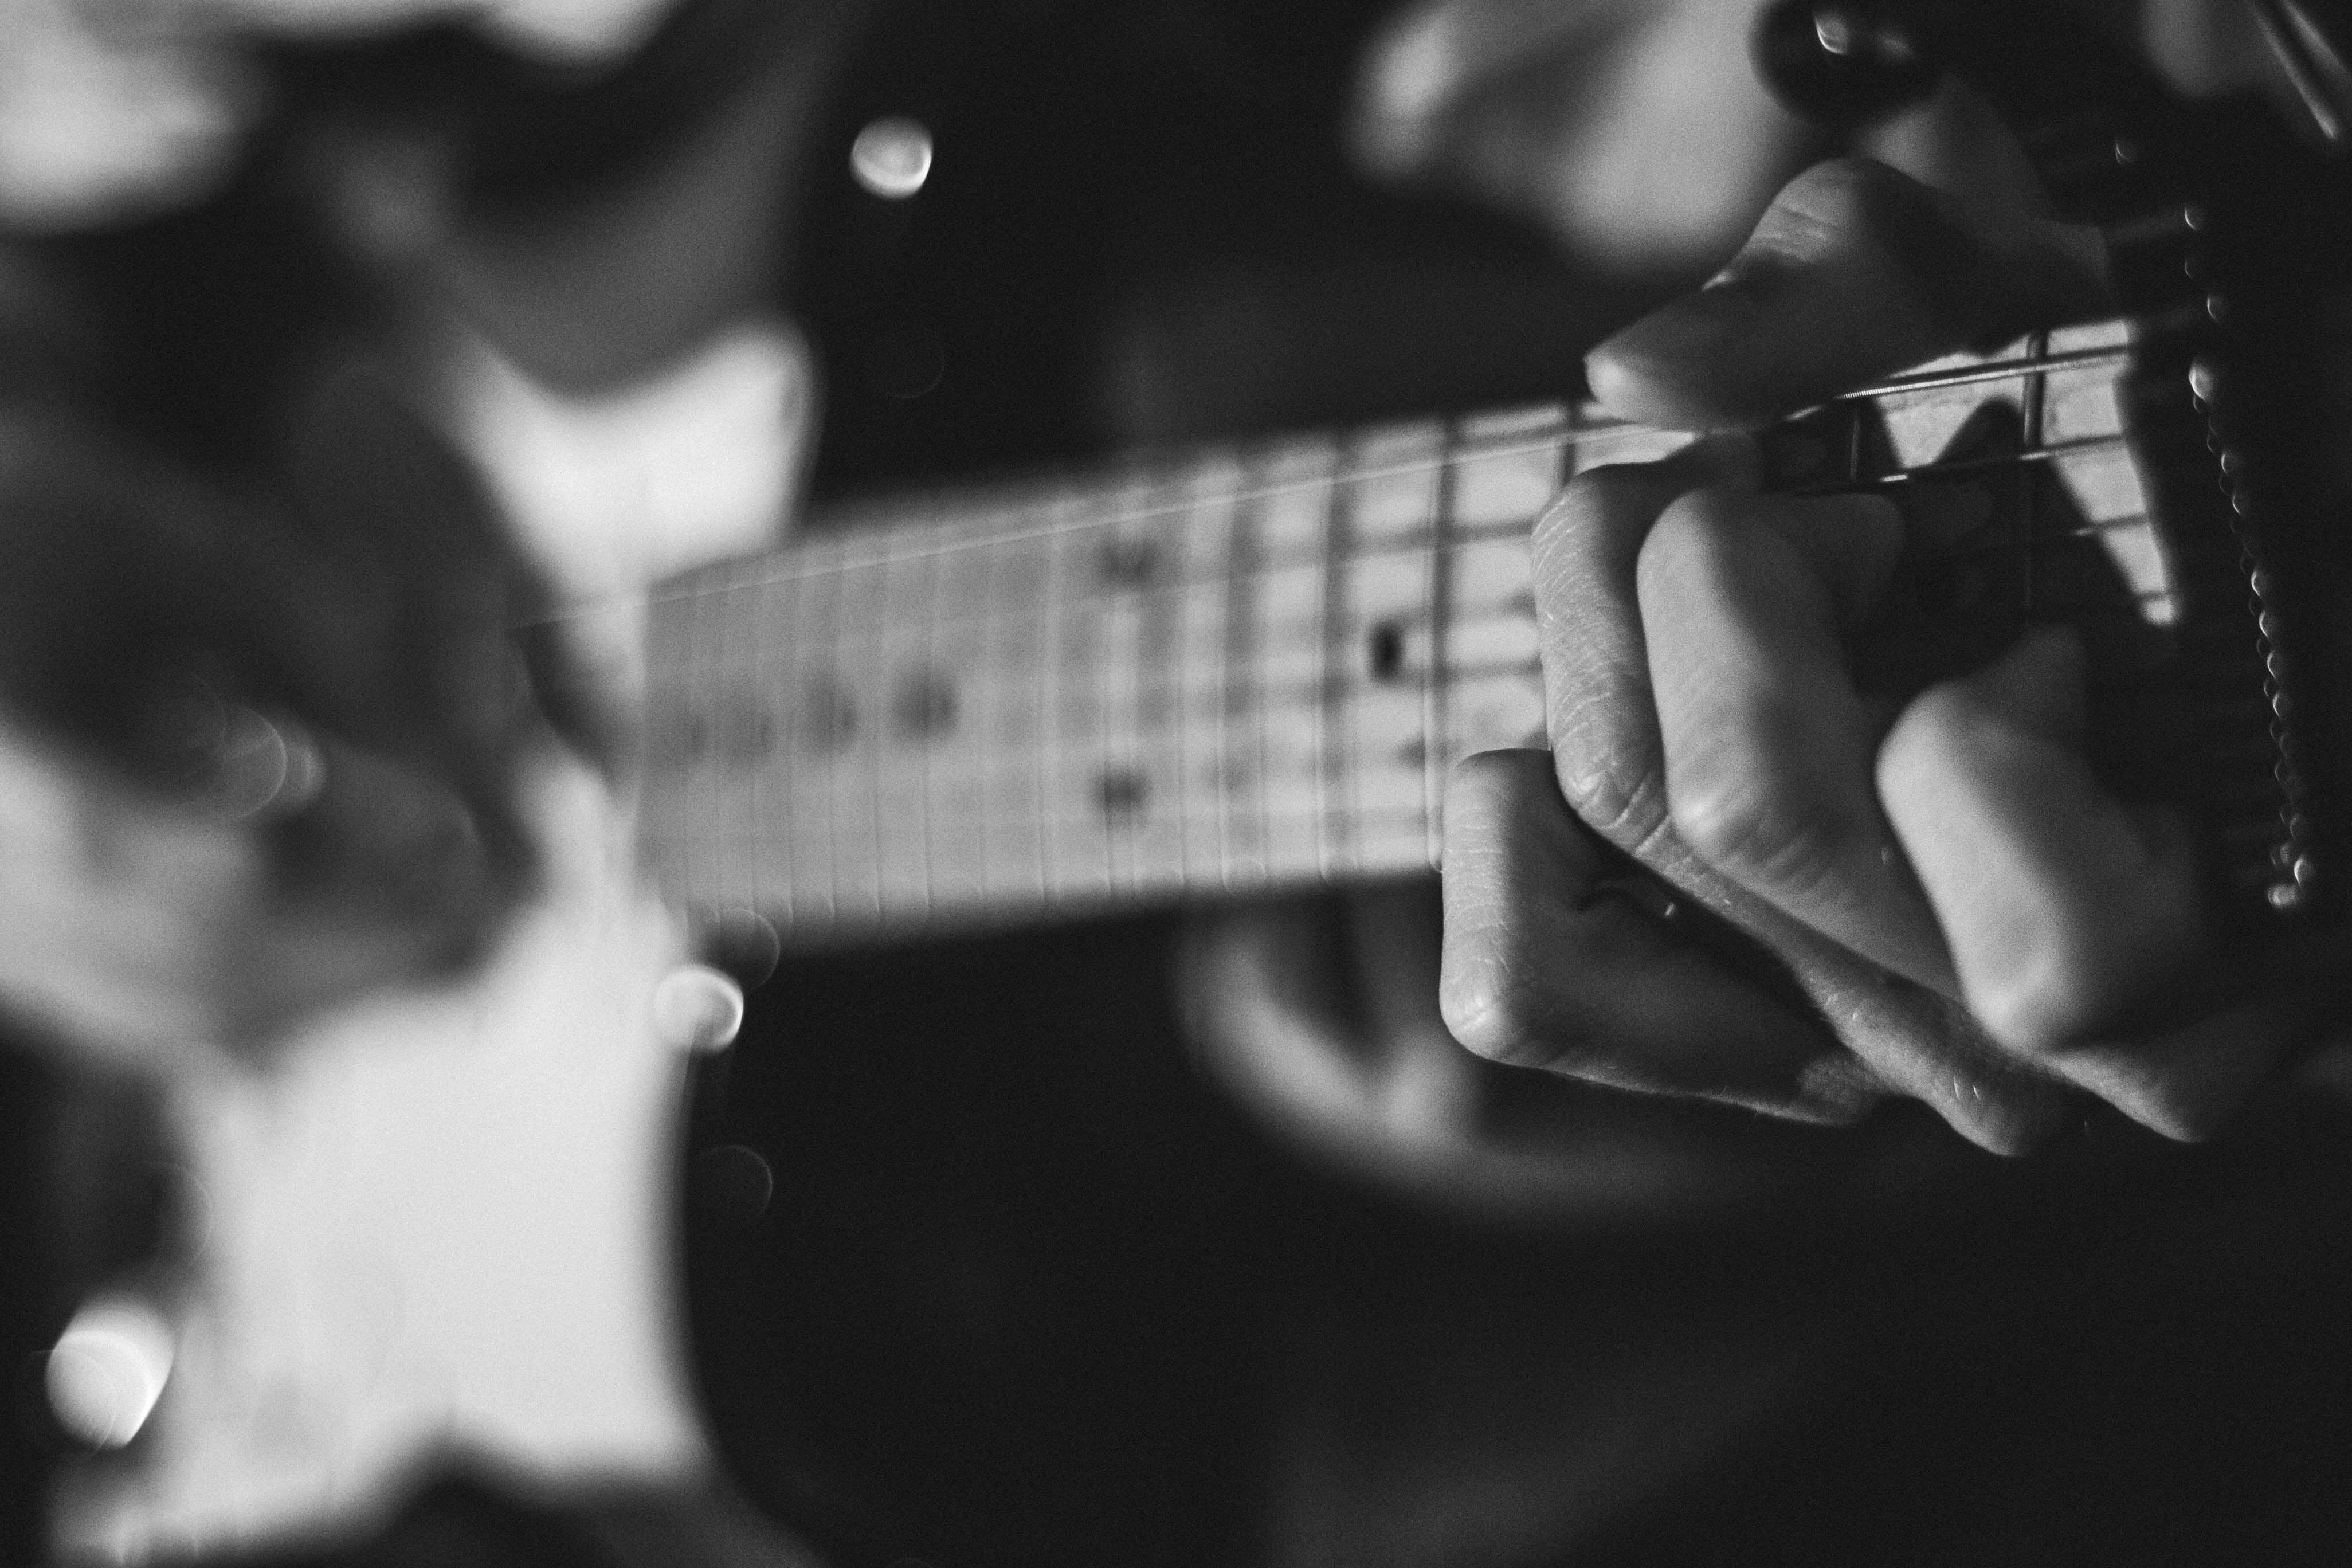 Practice Tabbing Songs to Develop Your Guitar Skills